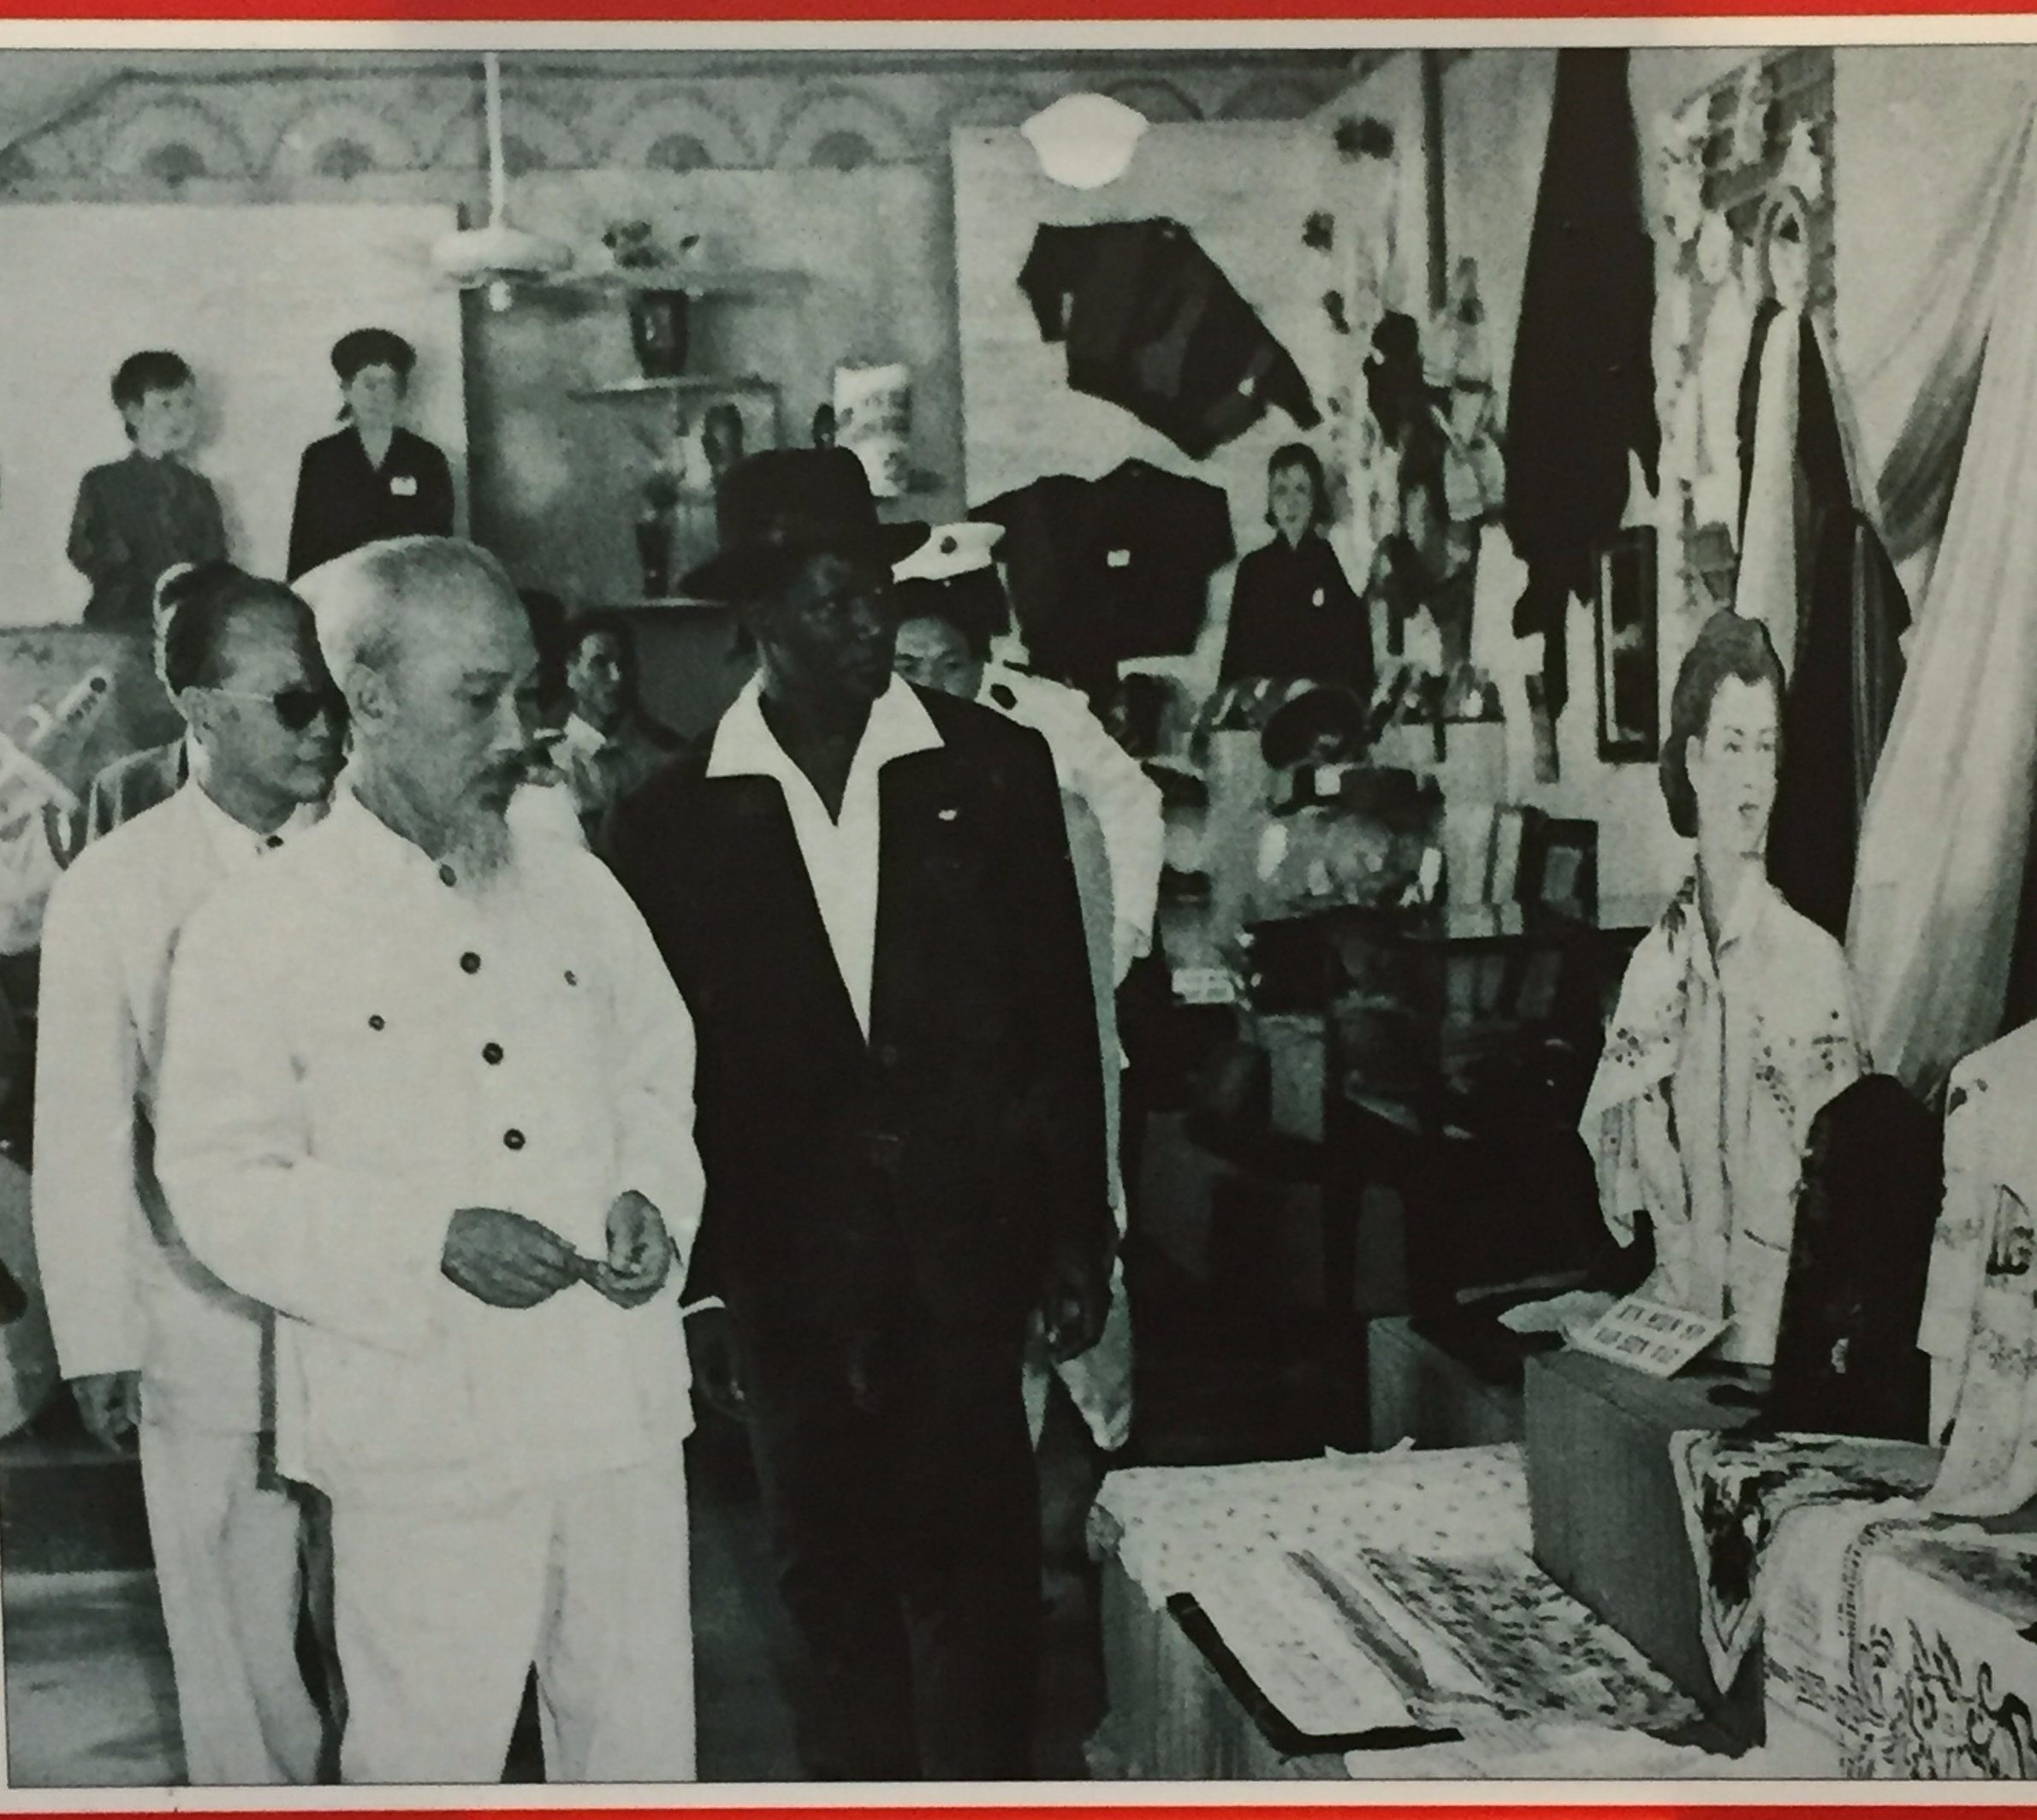 Can we take a second to appreciate president Ahmed Sekou Toure of Guinea's pimp suit here? (Pictured with Ho Chi Minh.)